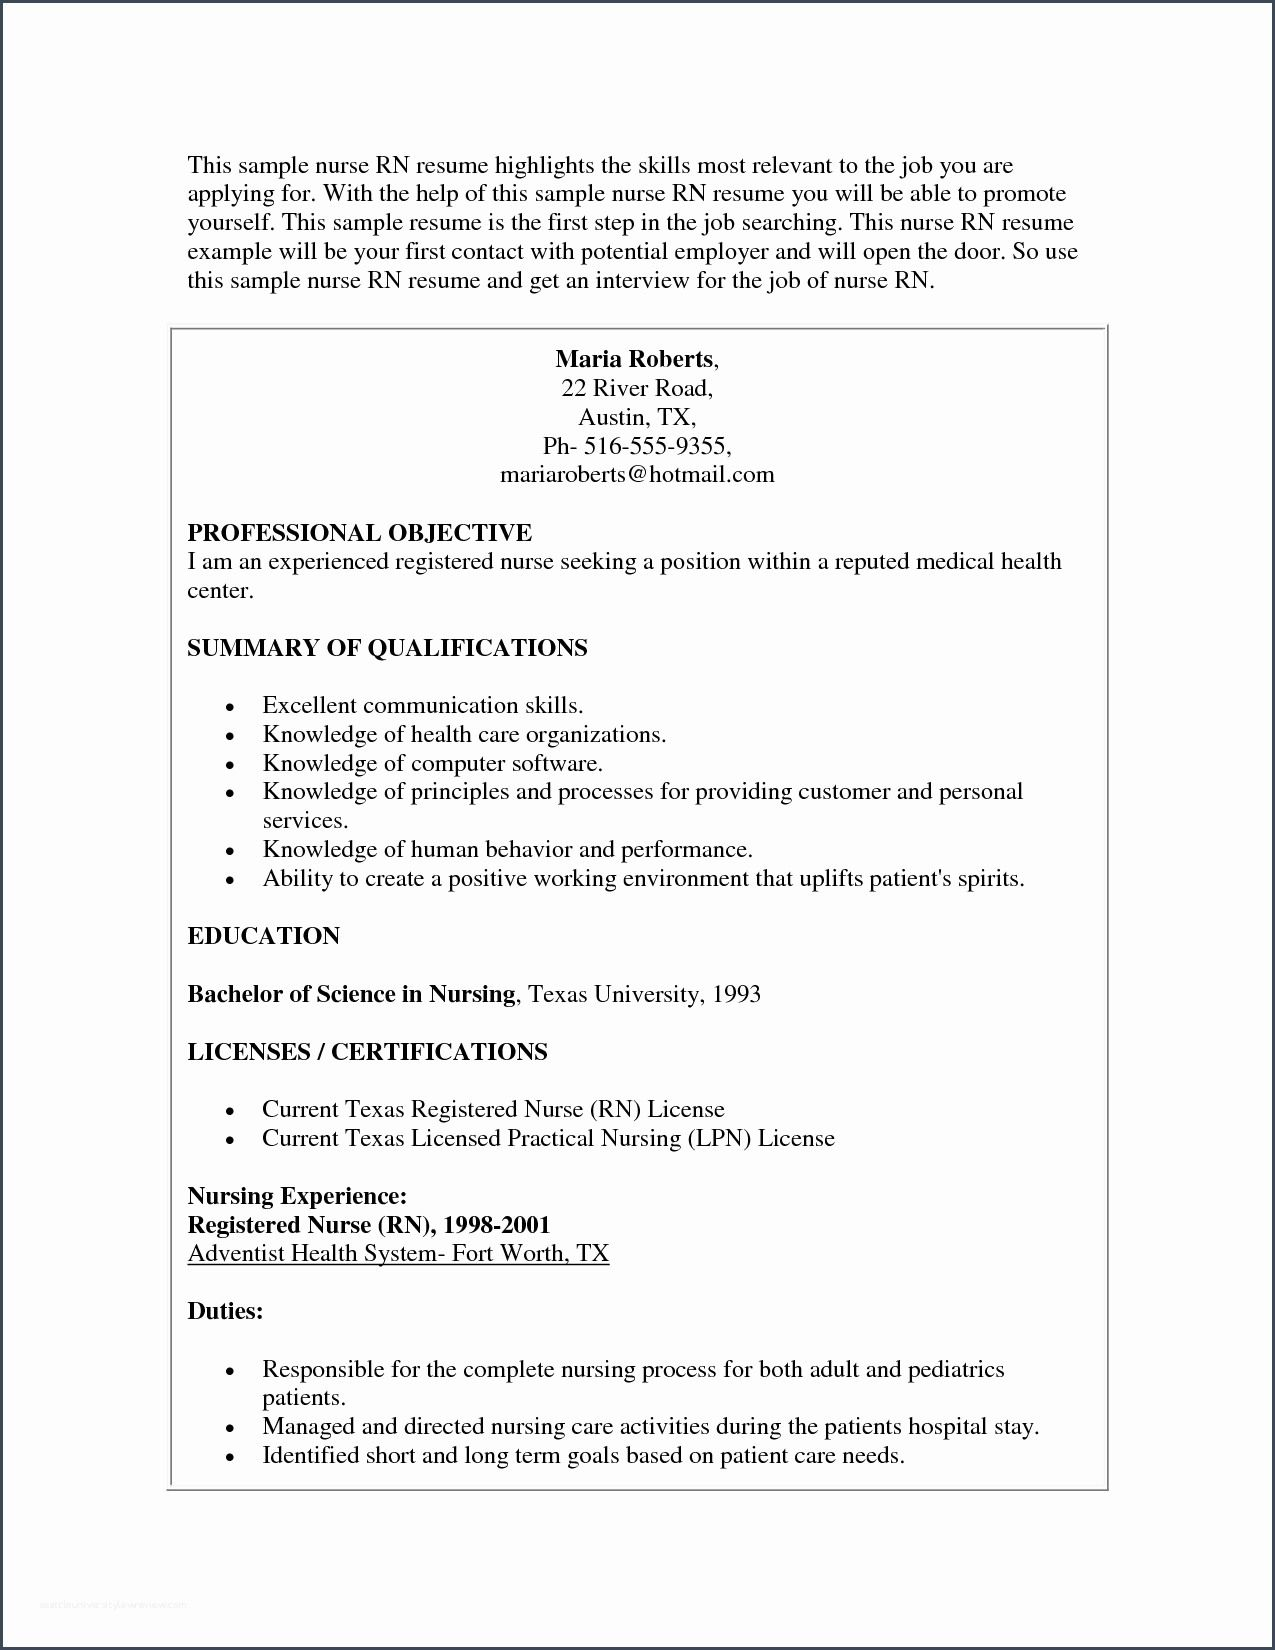 referencecritical nurse sample resume Resume examples